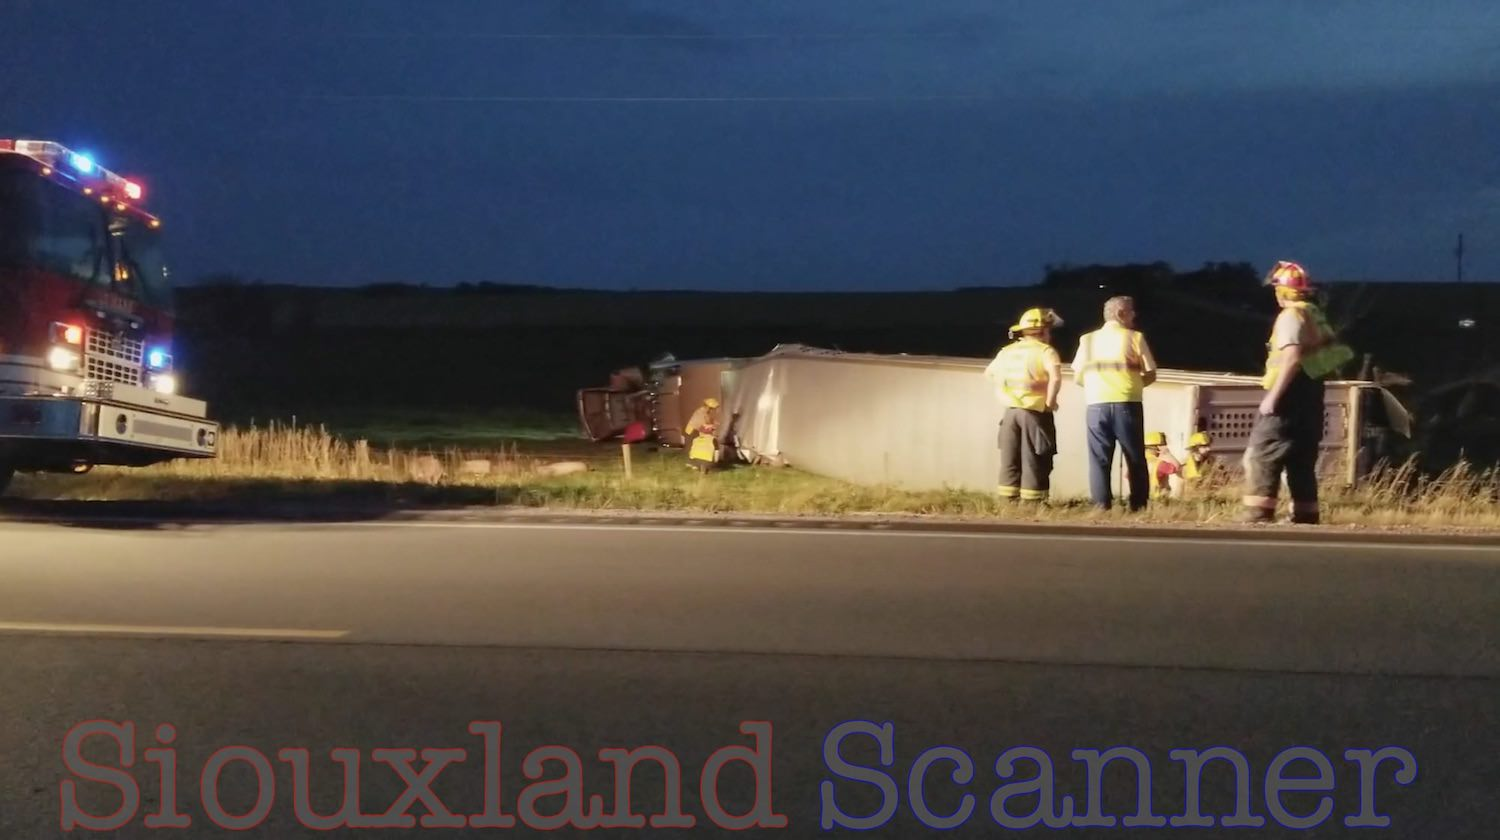 Unlicensed distracted Last Ride Semi driver crashes into bridge and lands in ditch killing 60 hogs